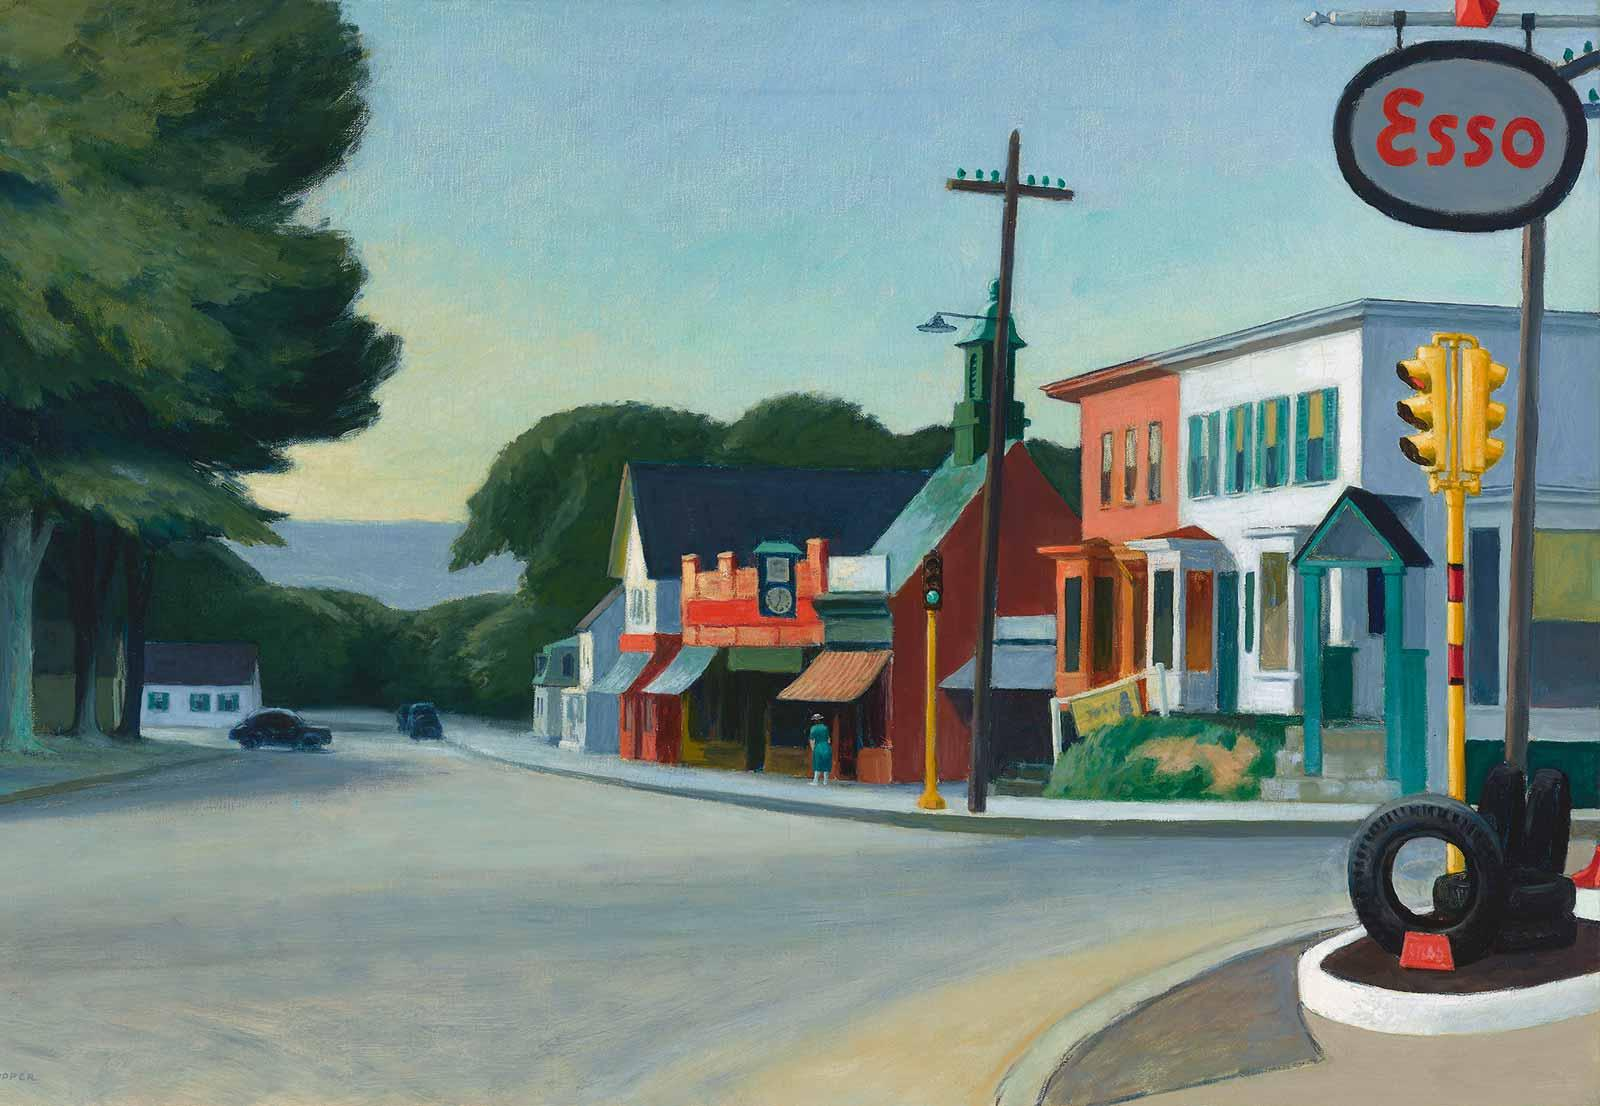 Edward Hopper, Portrait of Orleans, 1950.